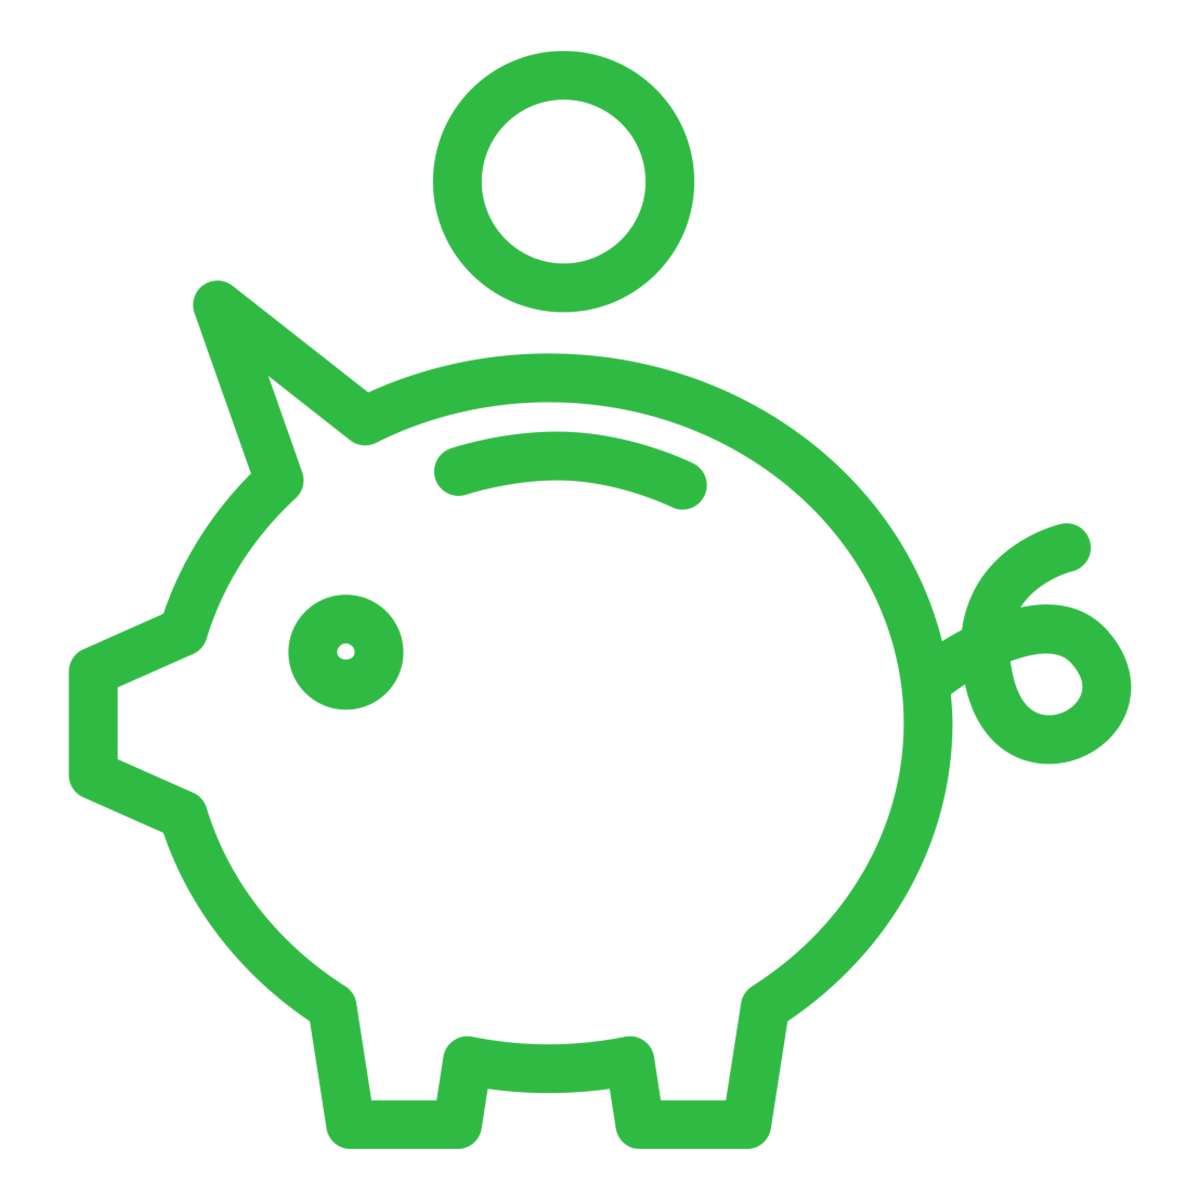 piggy bank icon light green.png